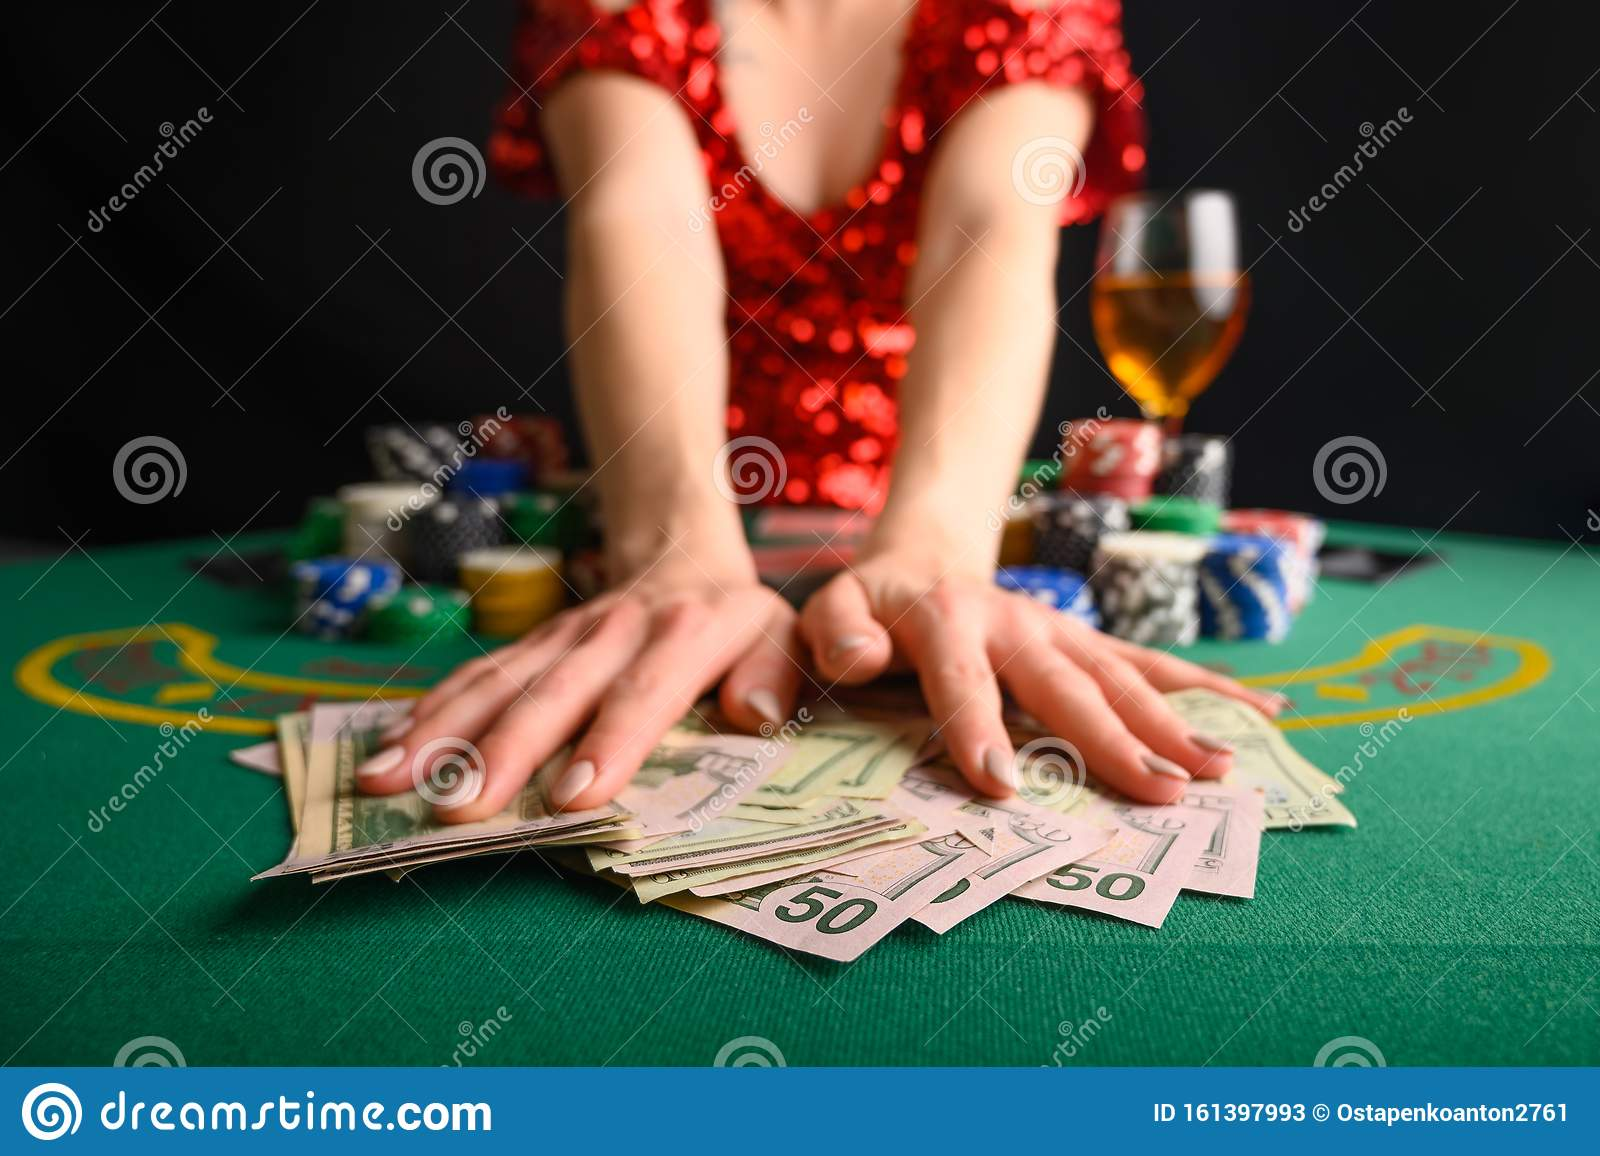 A Girl Wins Cards In A Casino And Takes Away Wins Money Dollars